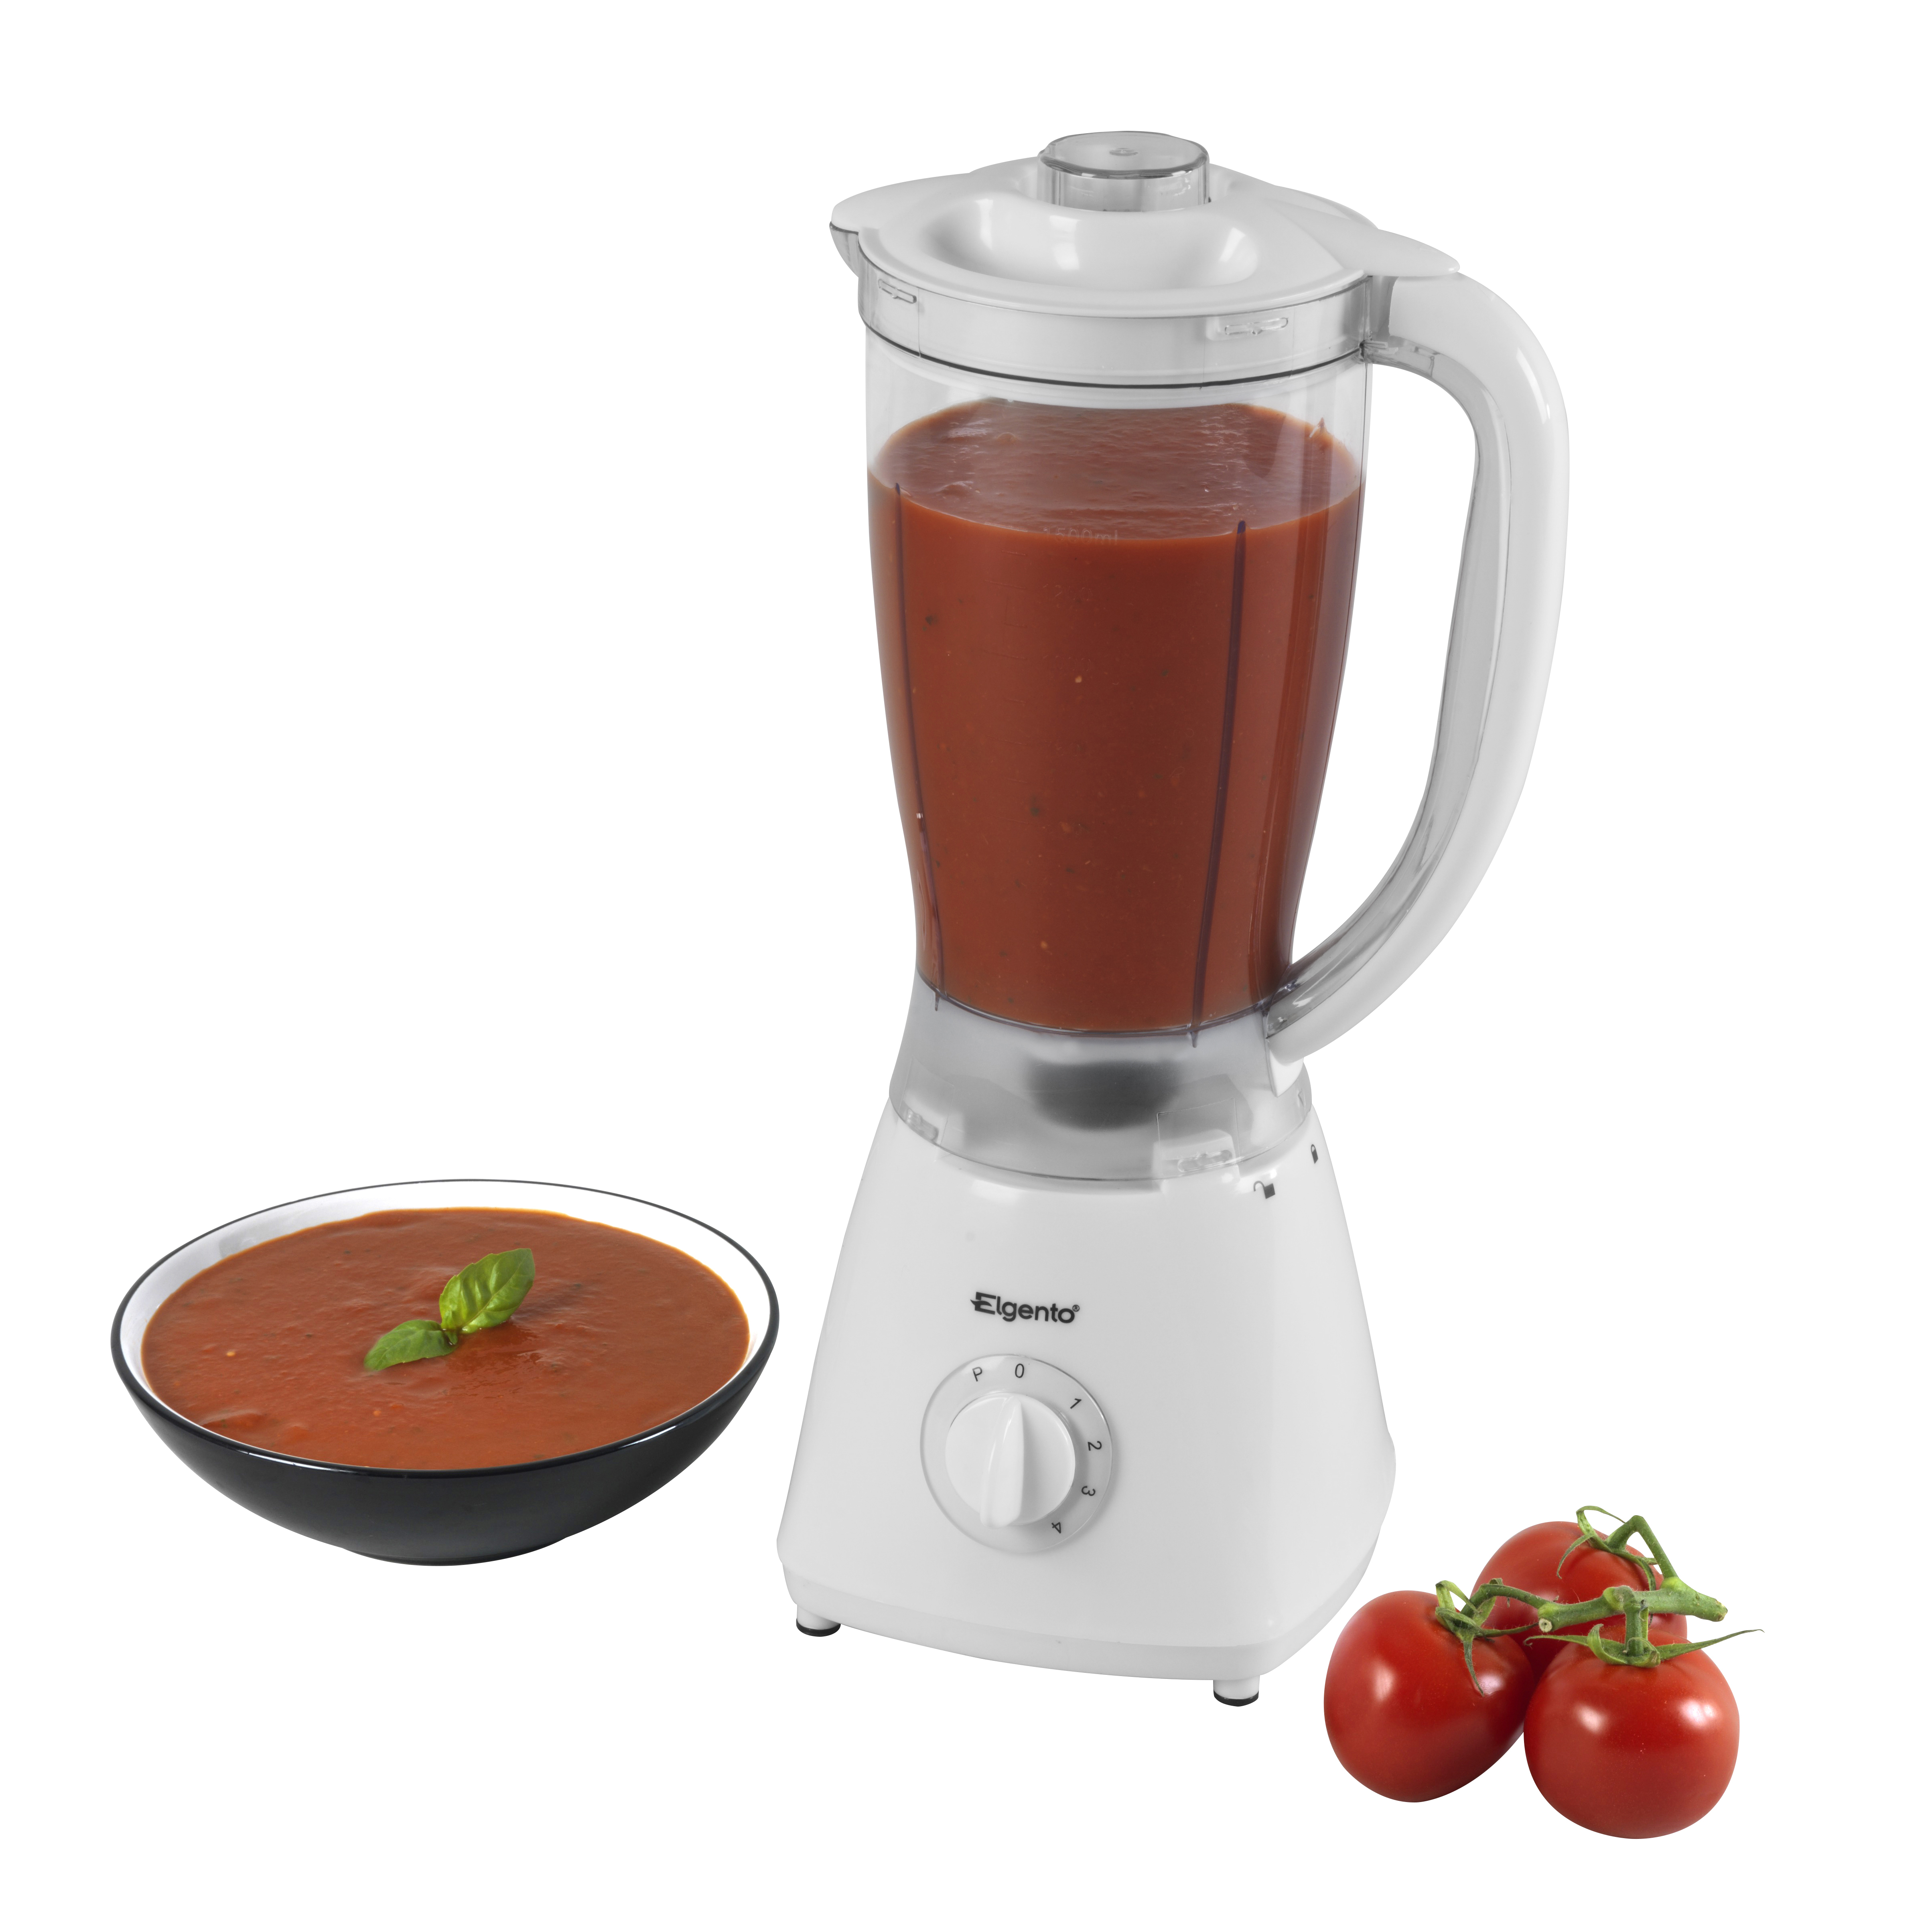 Elgento 1.5L Blender No Colour